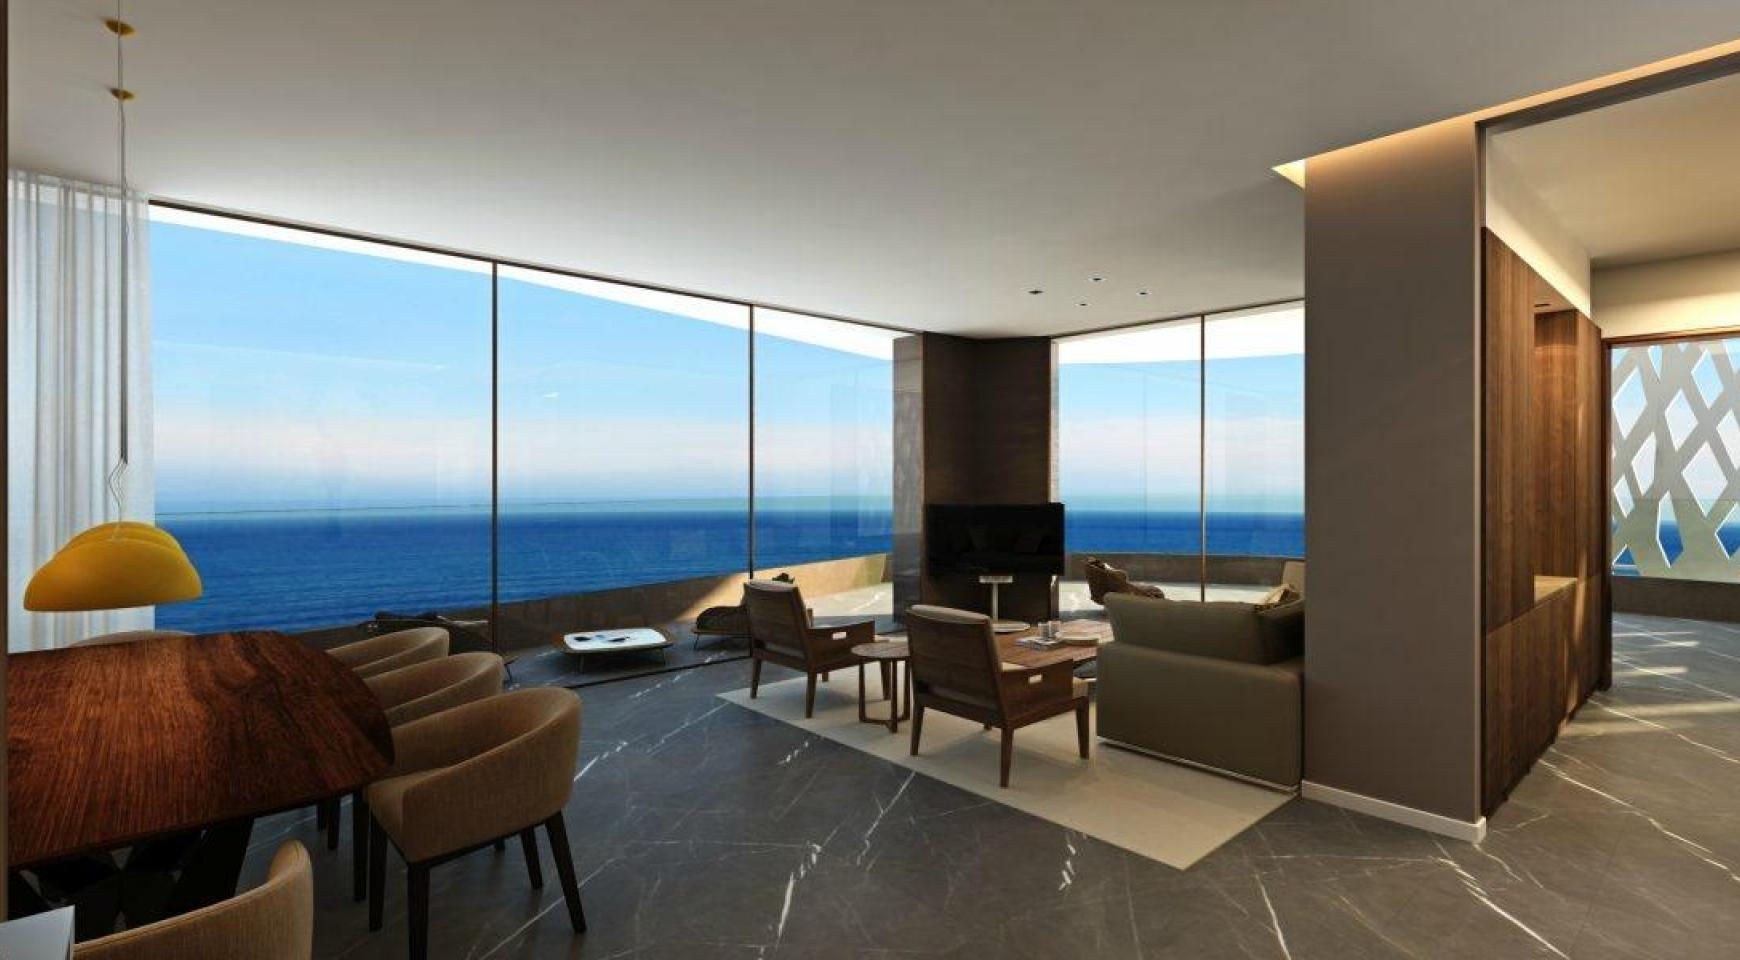 Modern 2 Bedroom Apartment in a New Unique Project by the Sea - 17